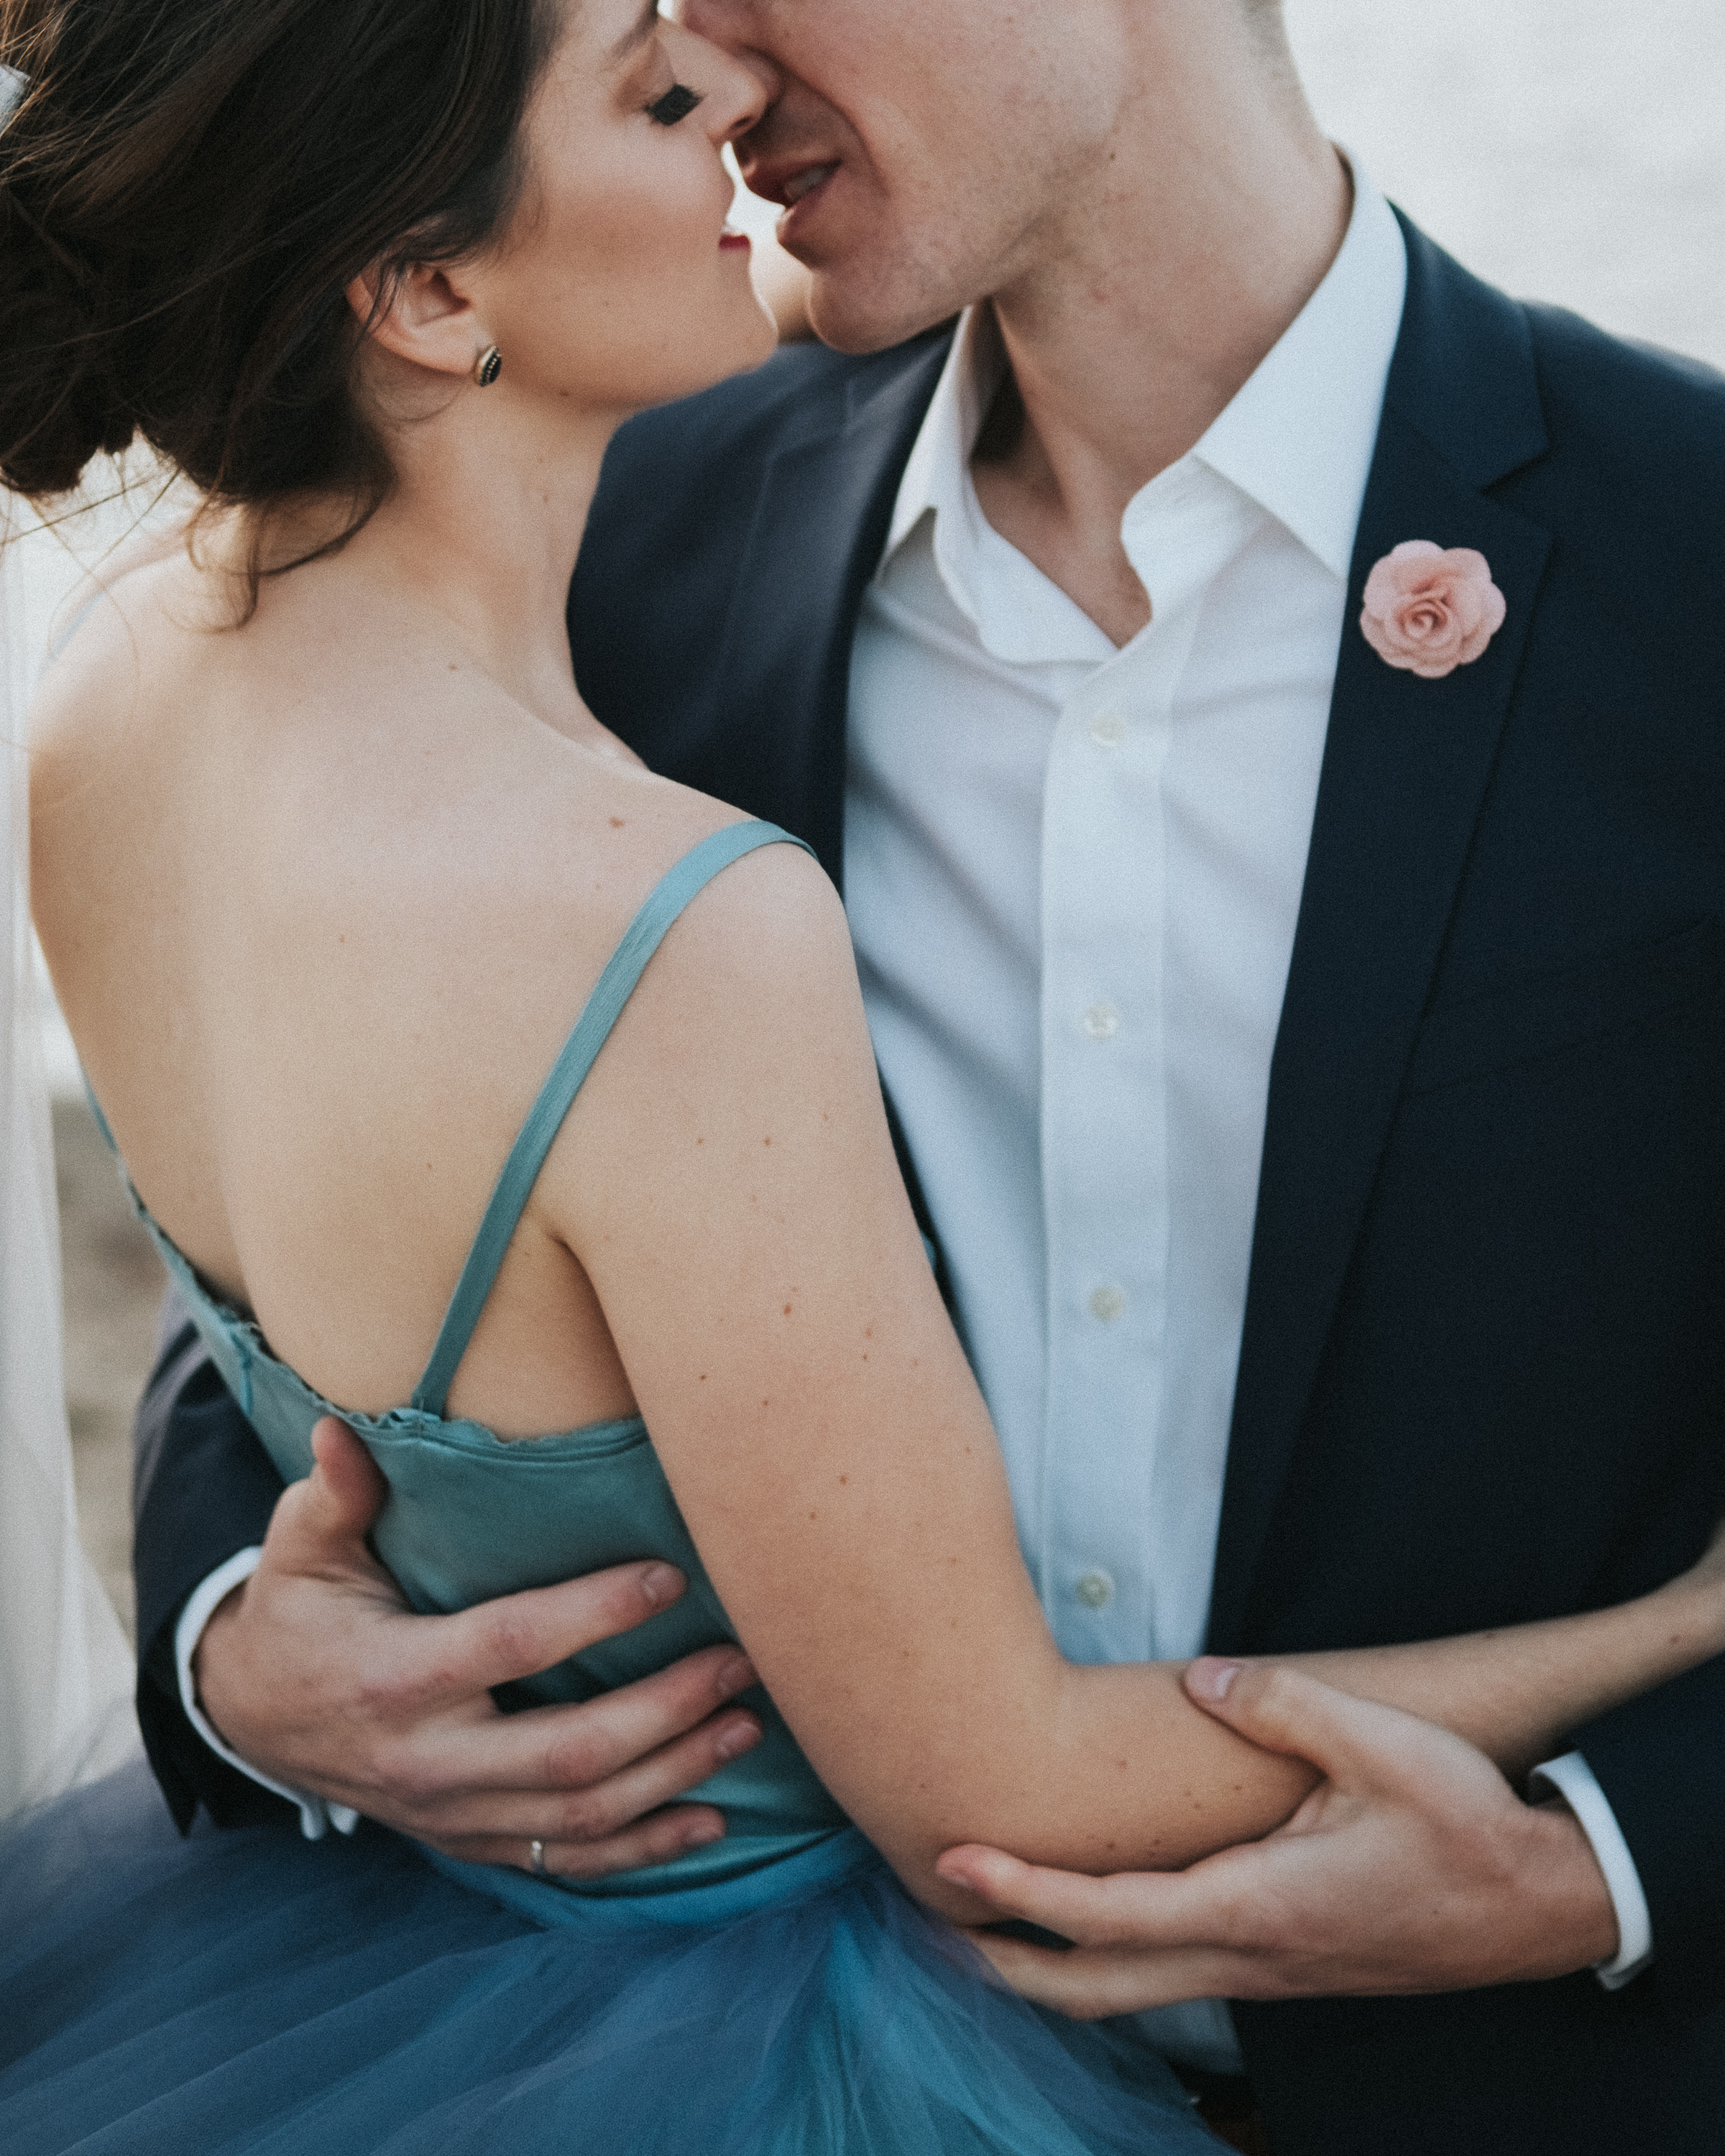 Couple's intimate kiss on the dance floor photographed by Joel and Justyna - Ottawa wedding photographers